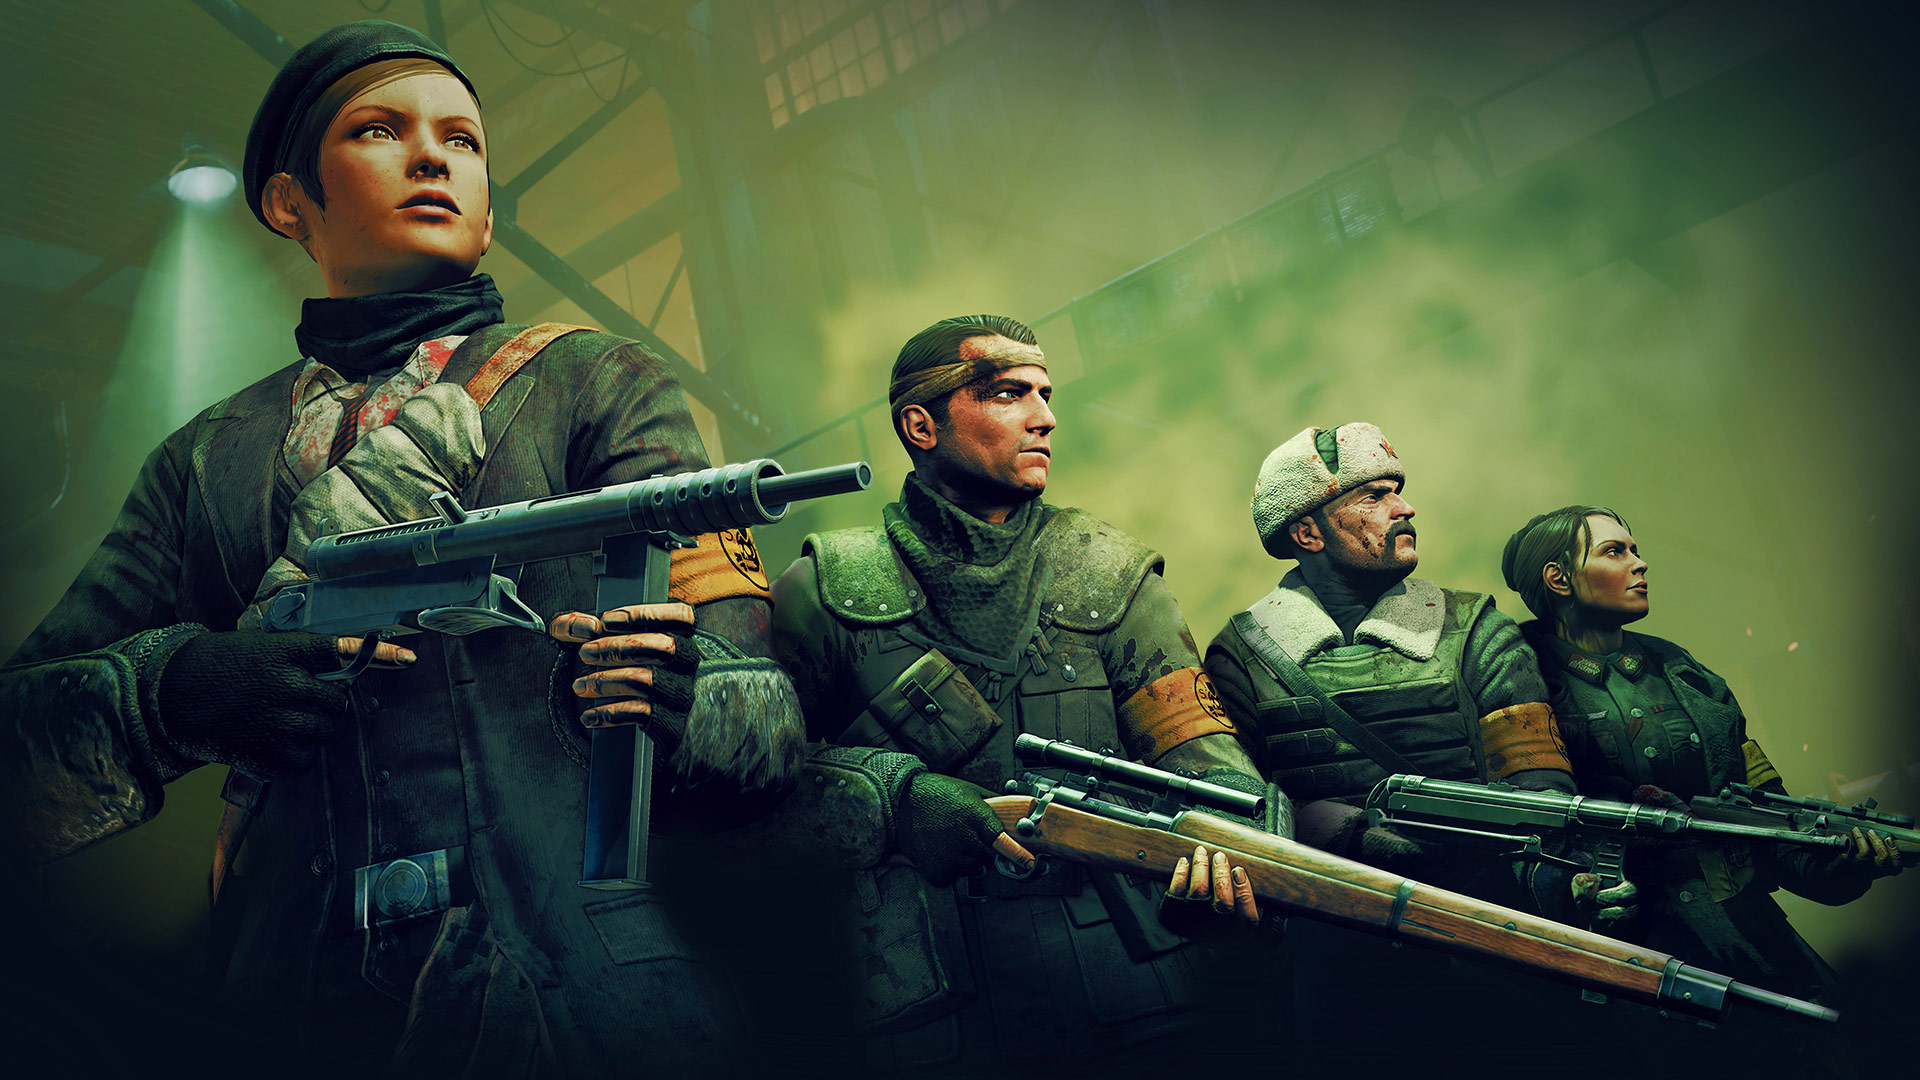 Sniper Elite team's Nazi Zombie Army trilogy coming to PC, PS4, Xbox One